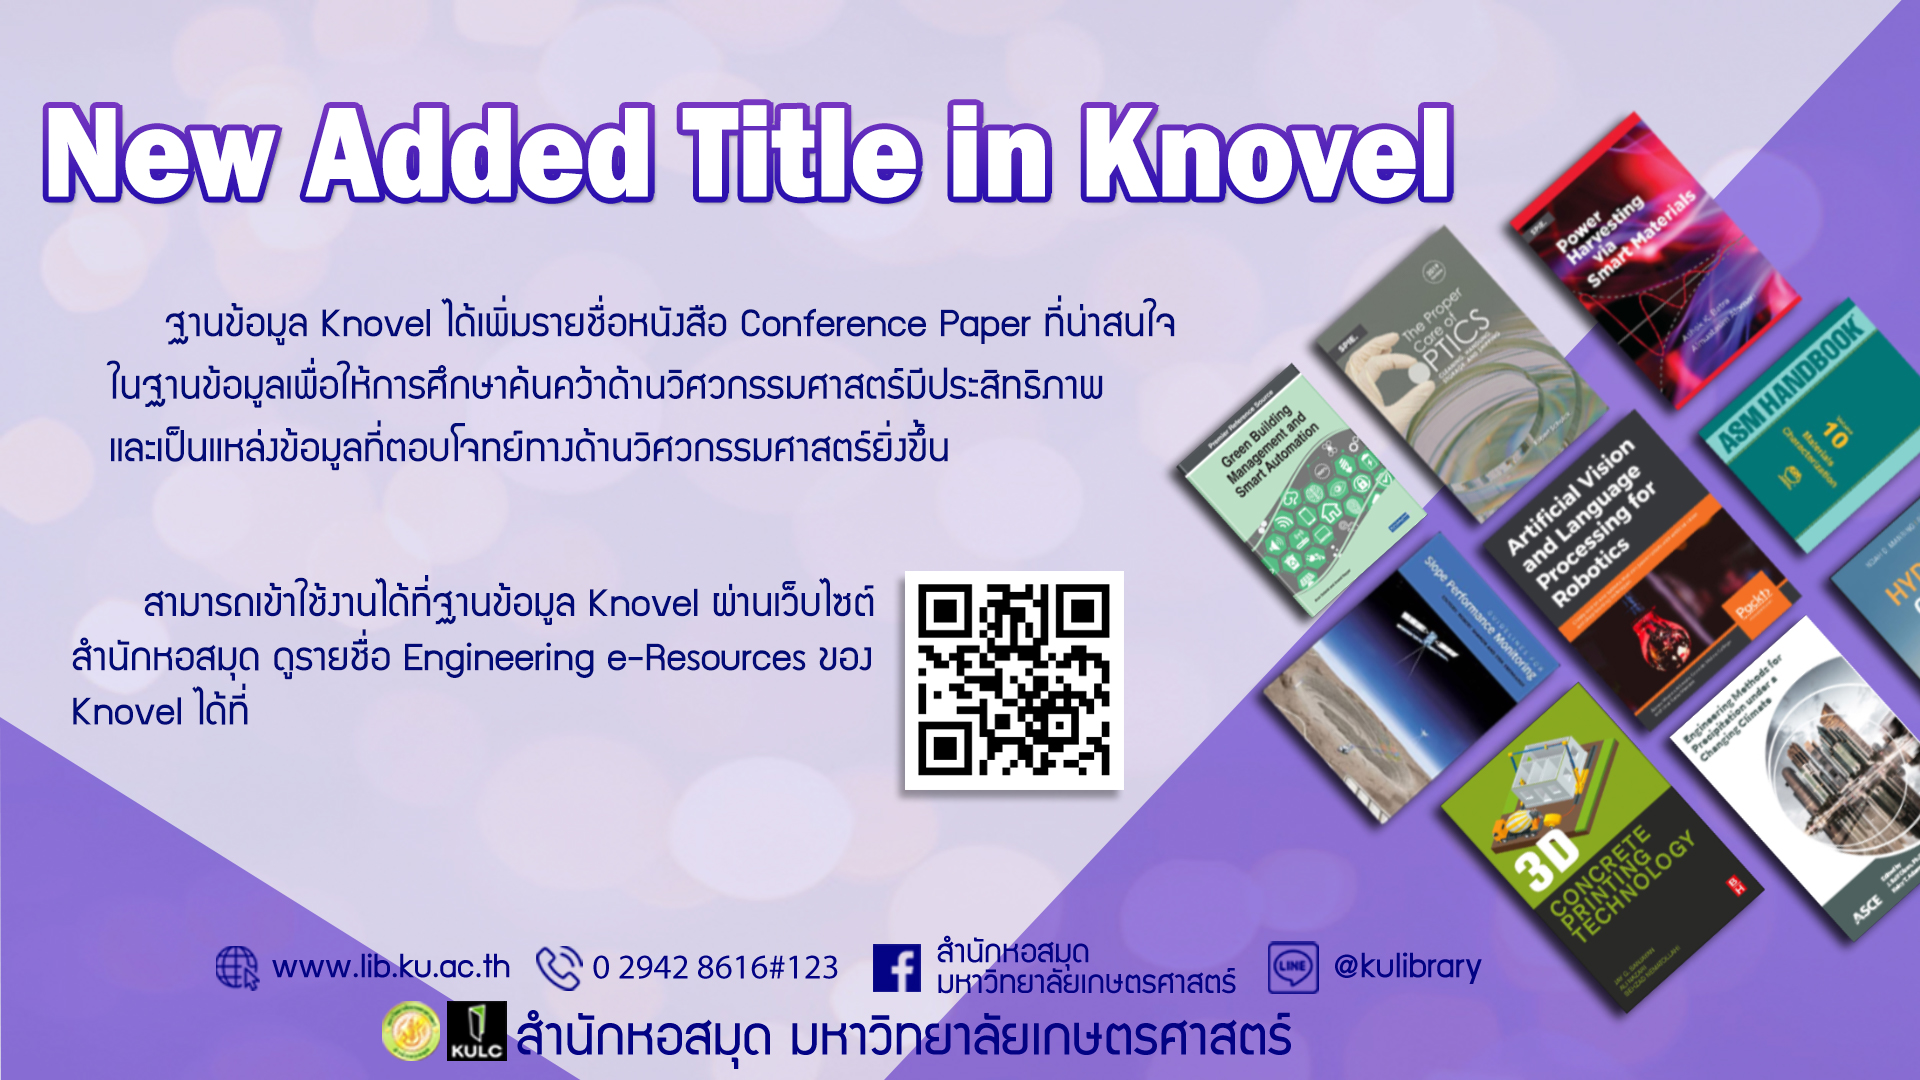 New Added Title in Knovel